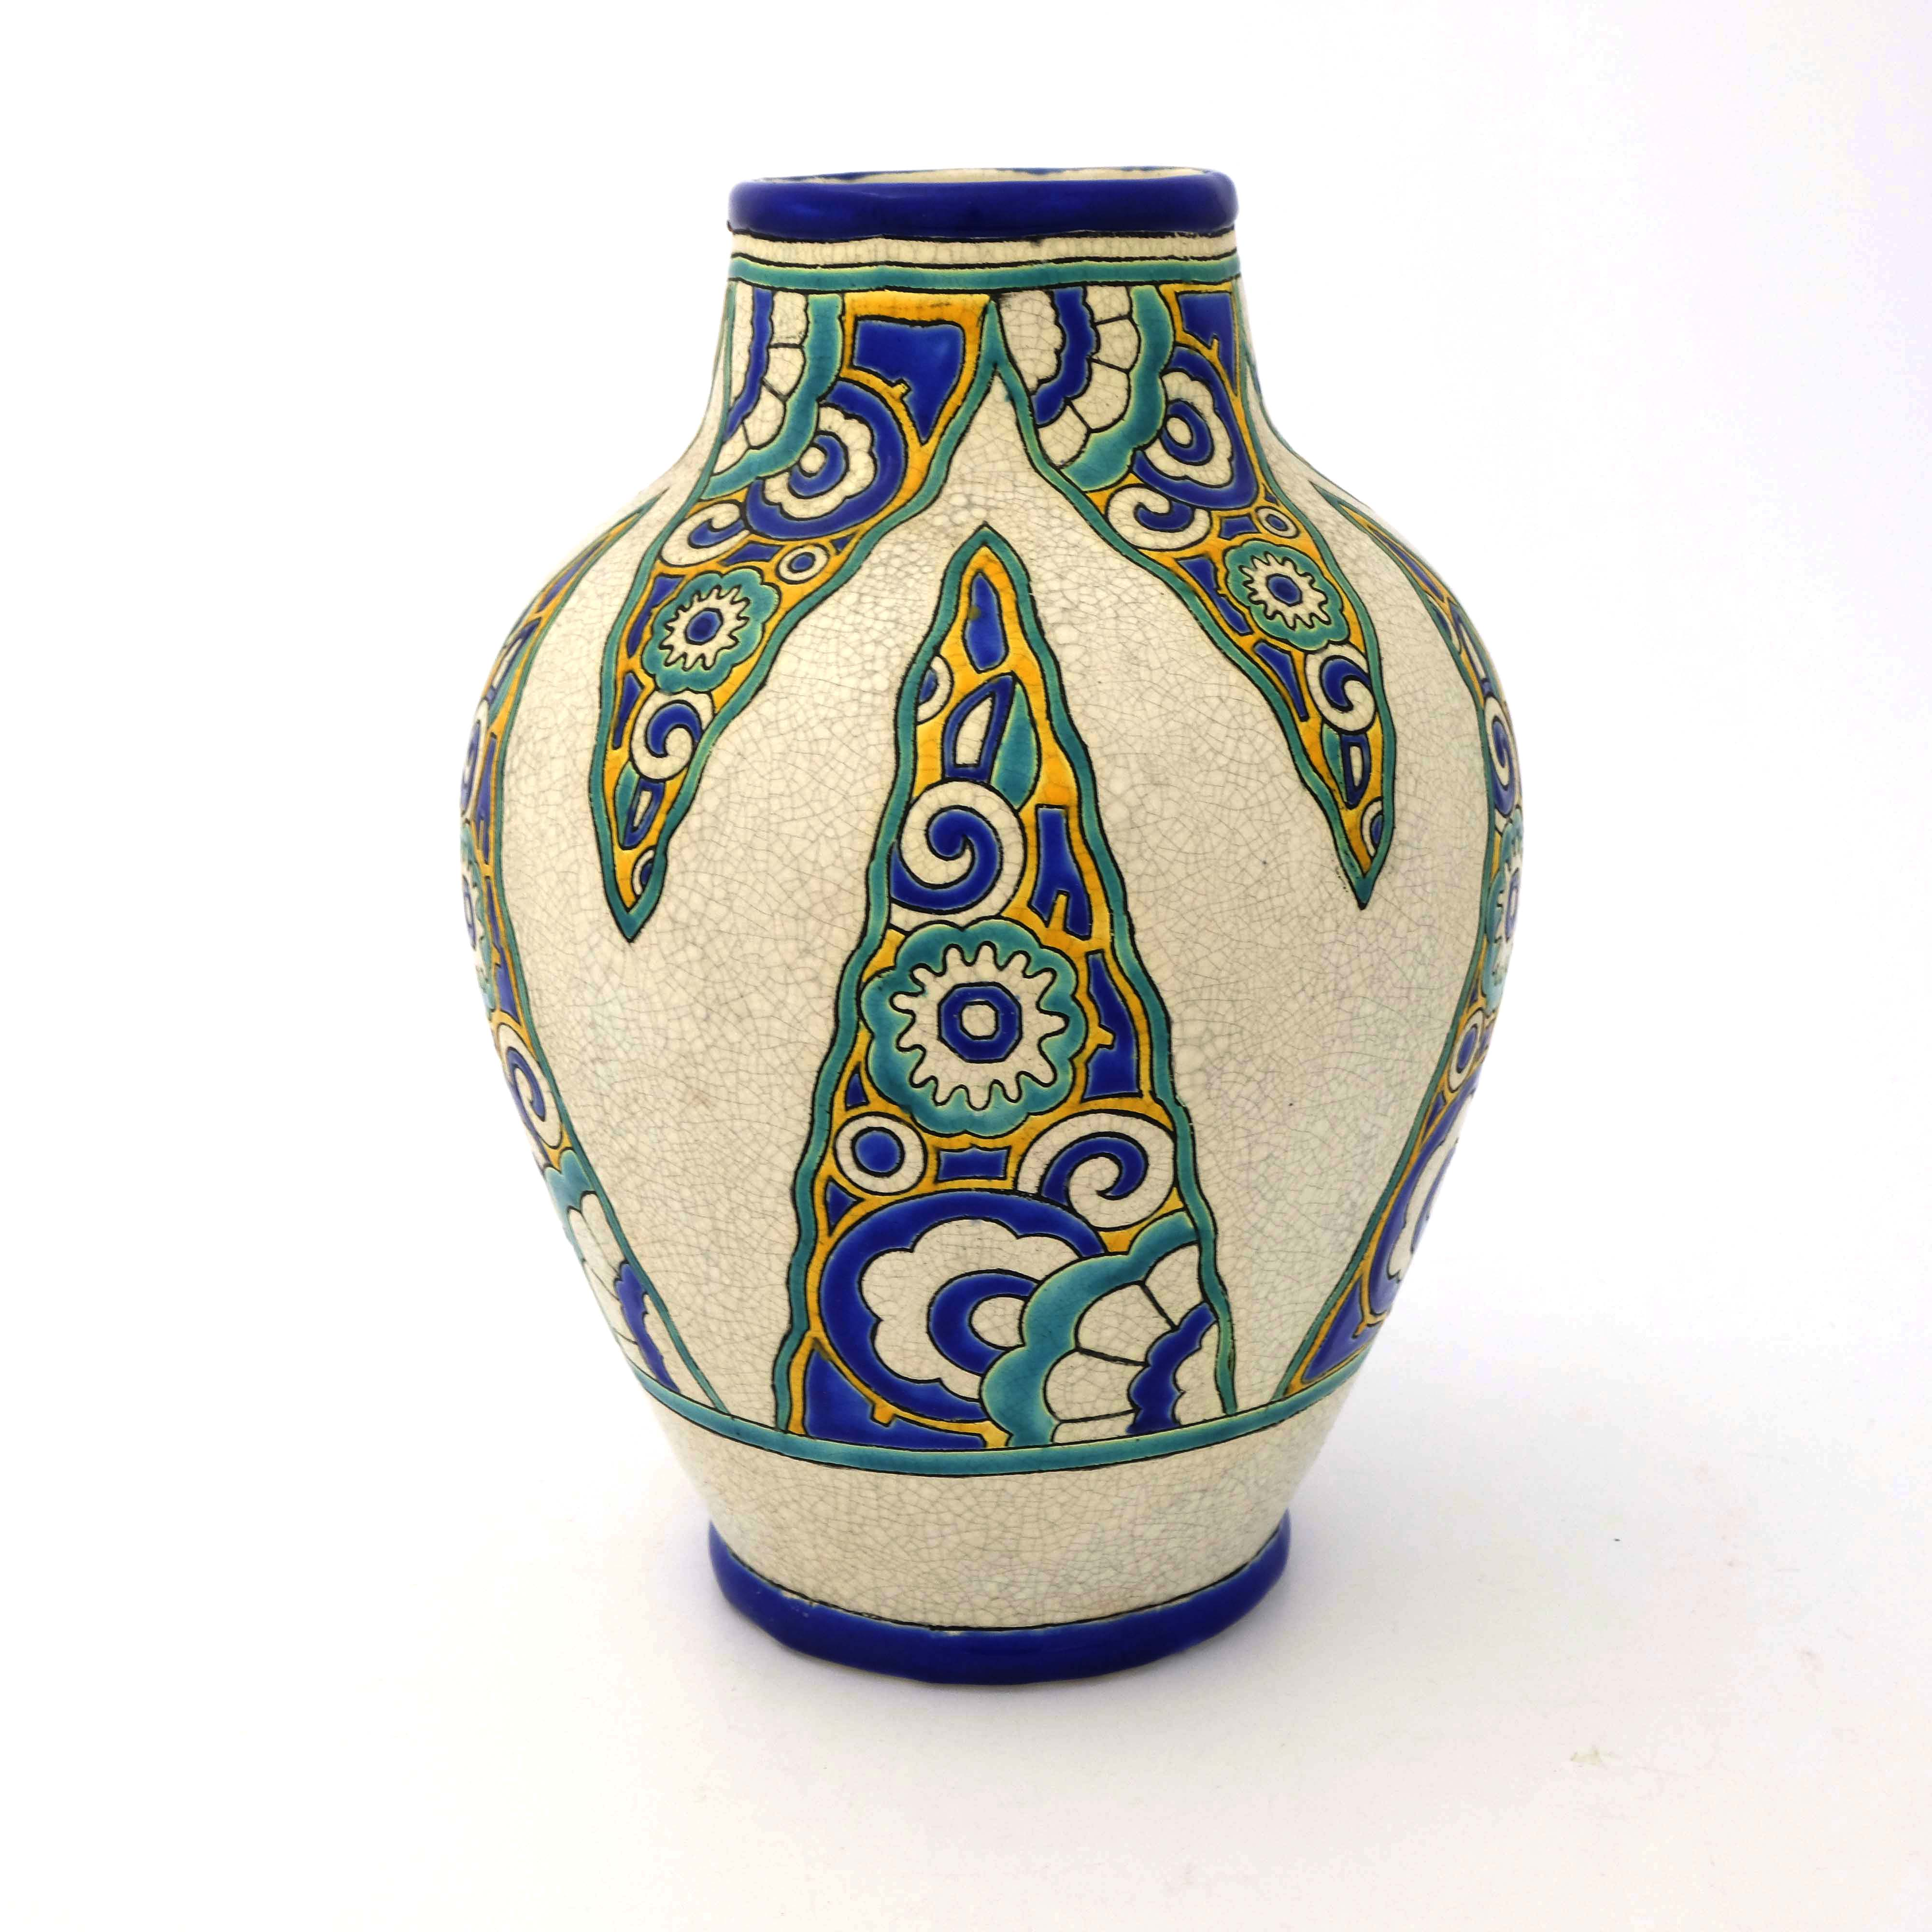 Charles Catteau for Boch Freres, an Art Deco vase - Image 2 of 5